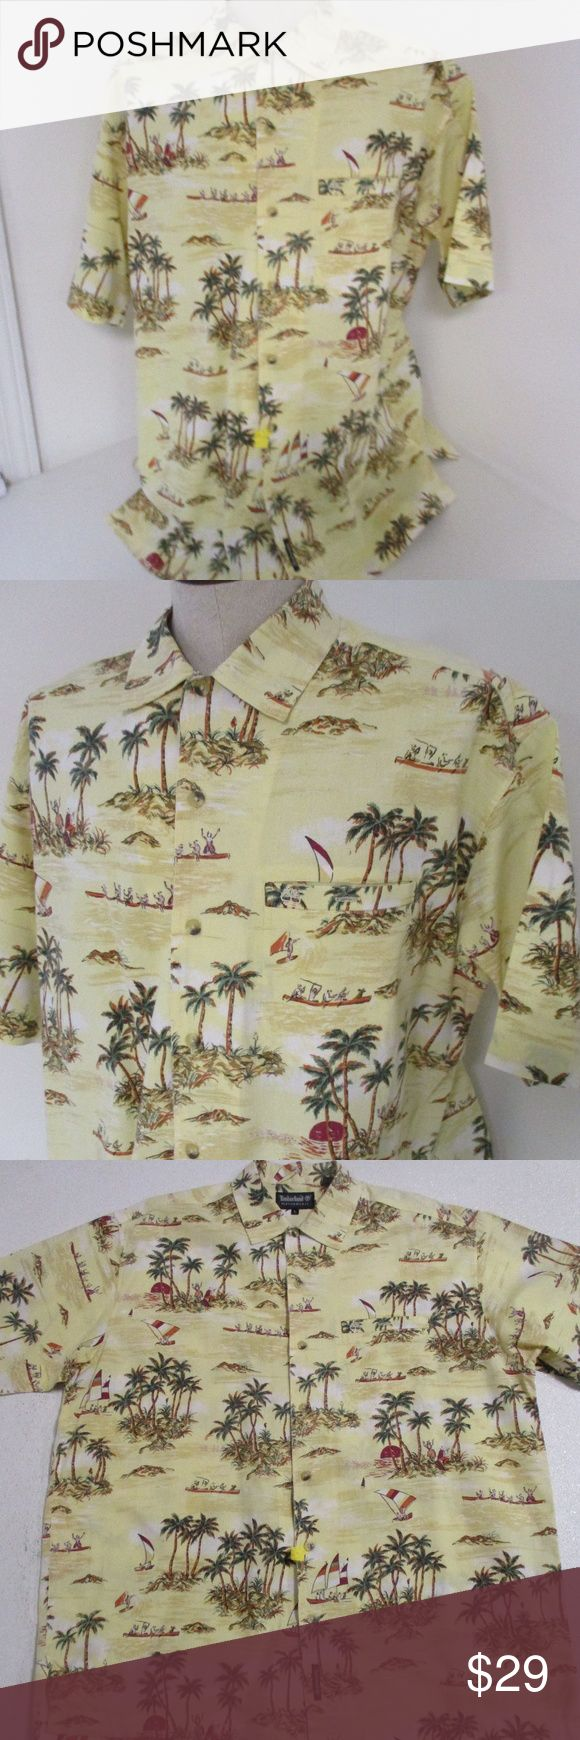 """Timberland Performance Hawaiian Hula Girl Shirt L Great shirt from Timberland Performance in size large     Yellow with tropical island and hula girl pattern     Feels like cotton     Machine washable, but shirt has just been dry cleaned     Excellent condition     Chest- 27"""" laid flat  Length- 32"""" Timberland Shirts Casual Button Down Shirts"""